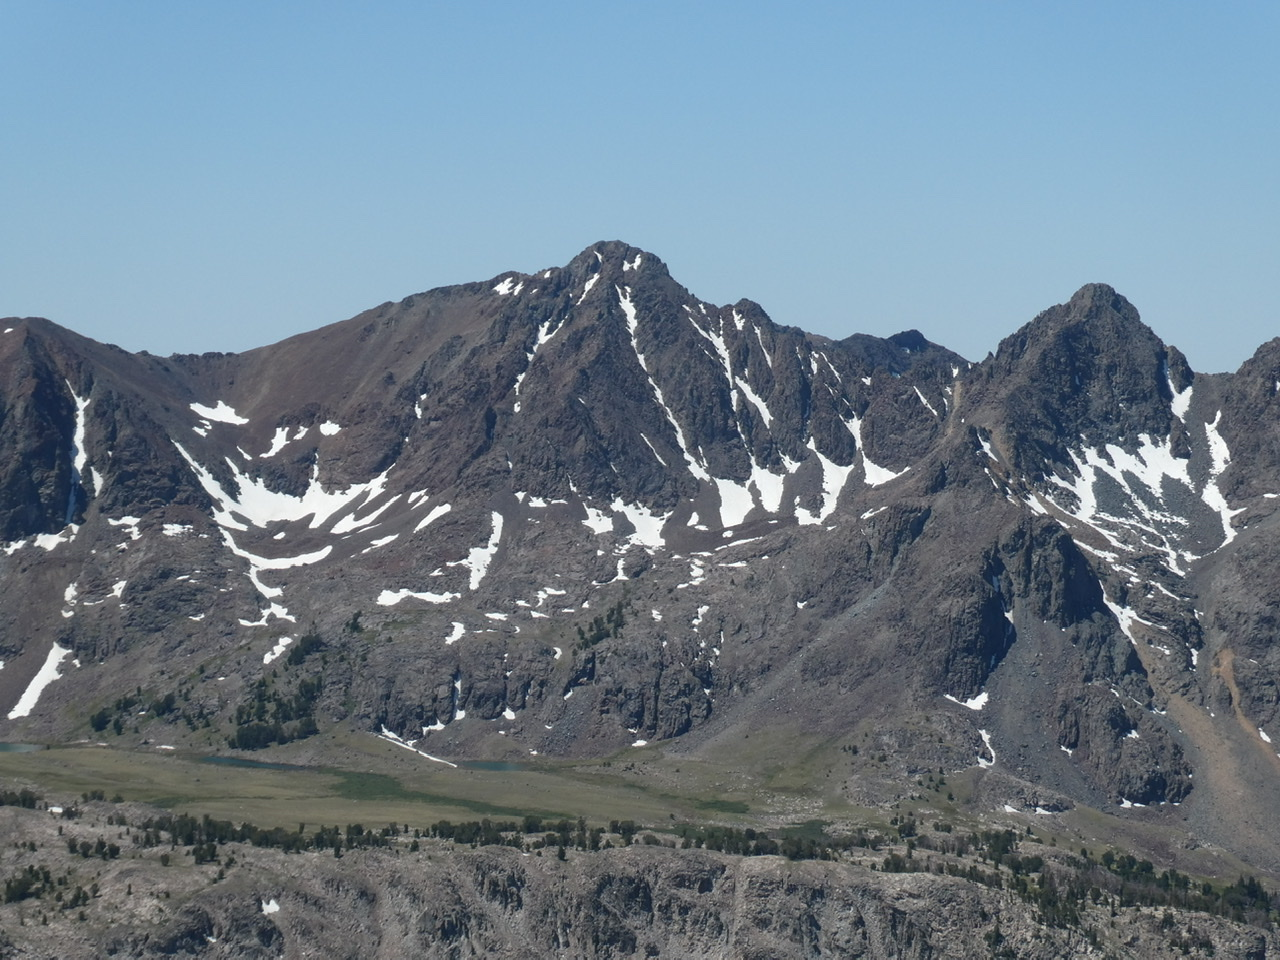 Alcyon Peak viewed from The Ramp.